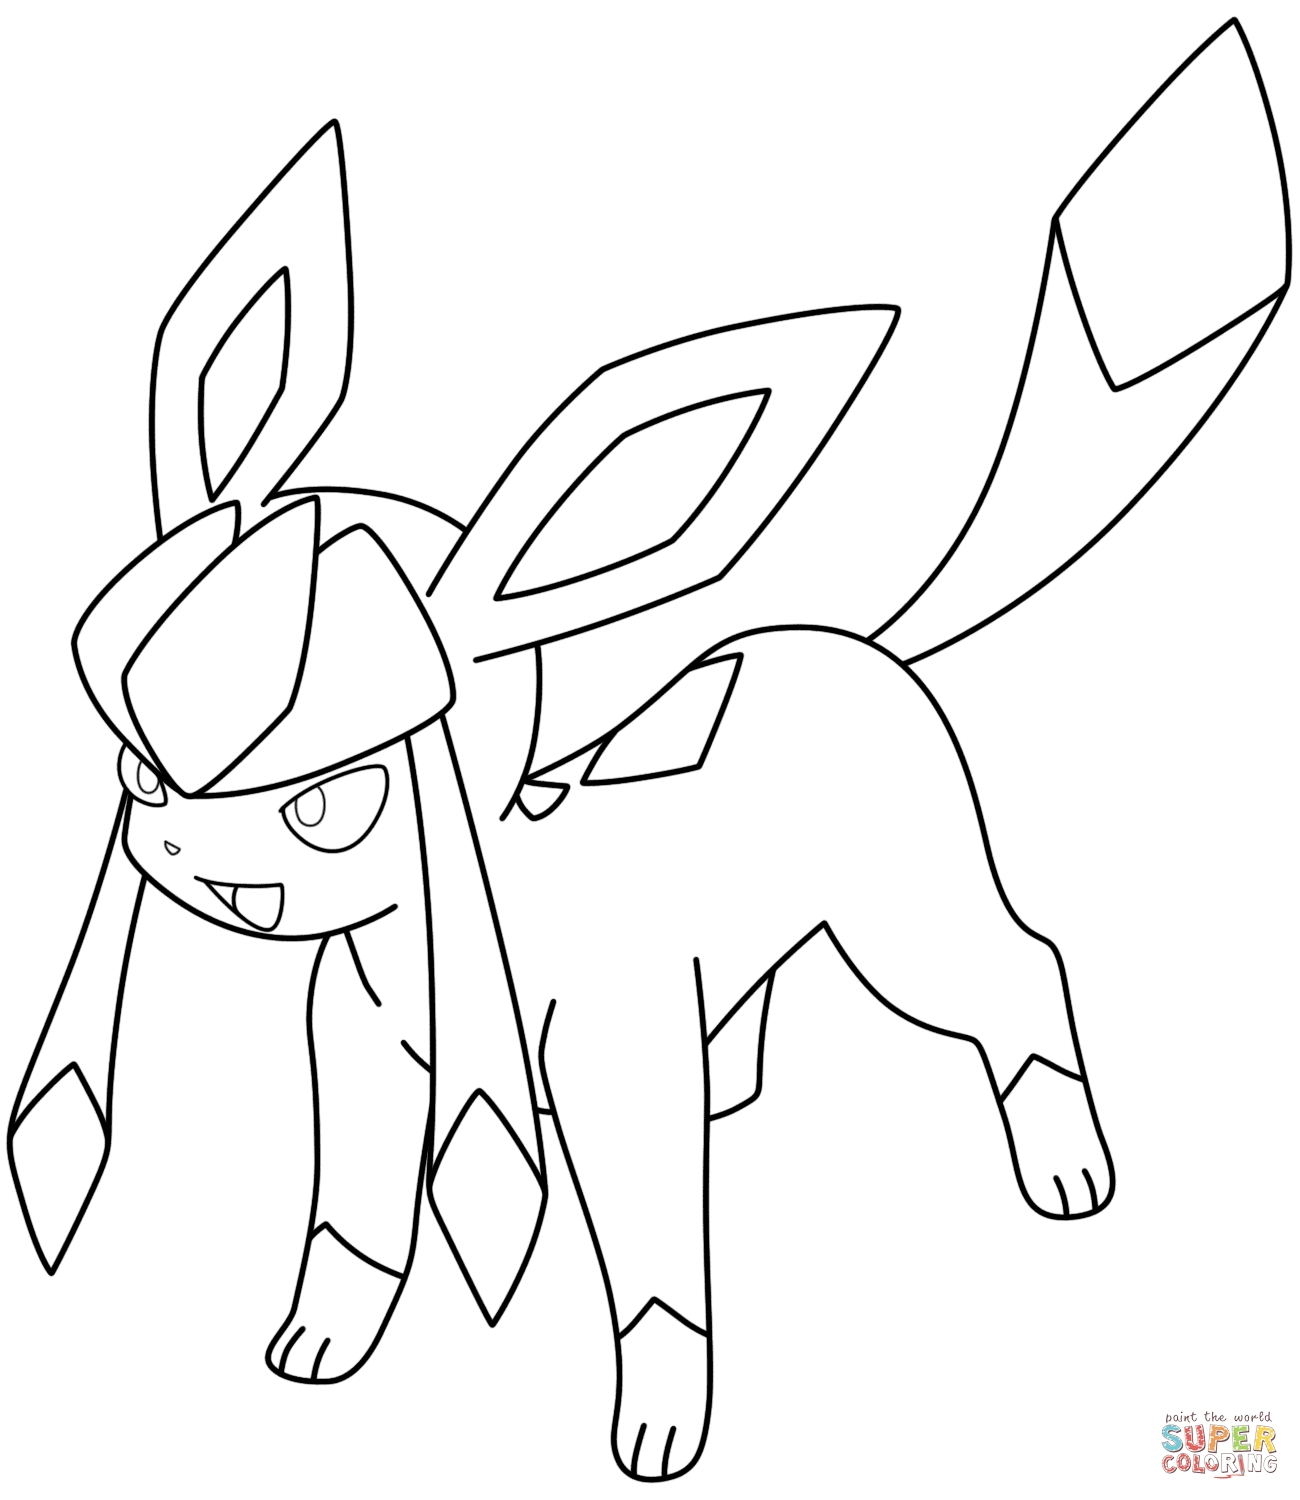 1300x1500 Genuine Glaceon Coloring Pages To Print For Kids